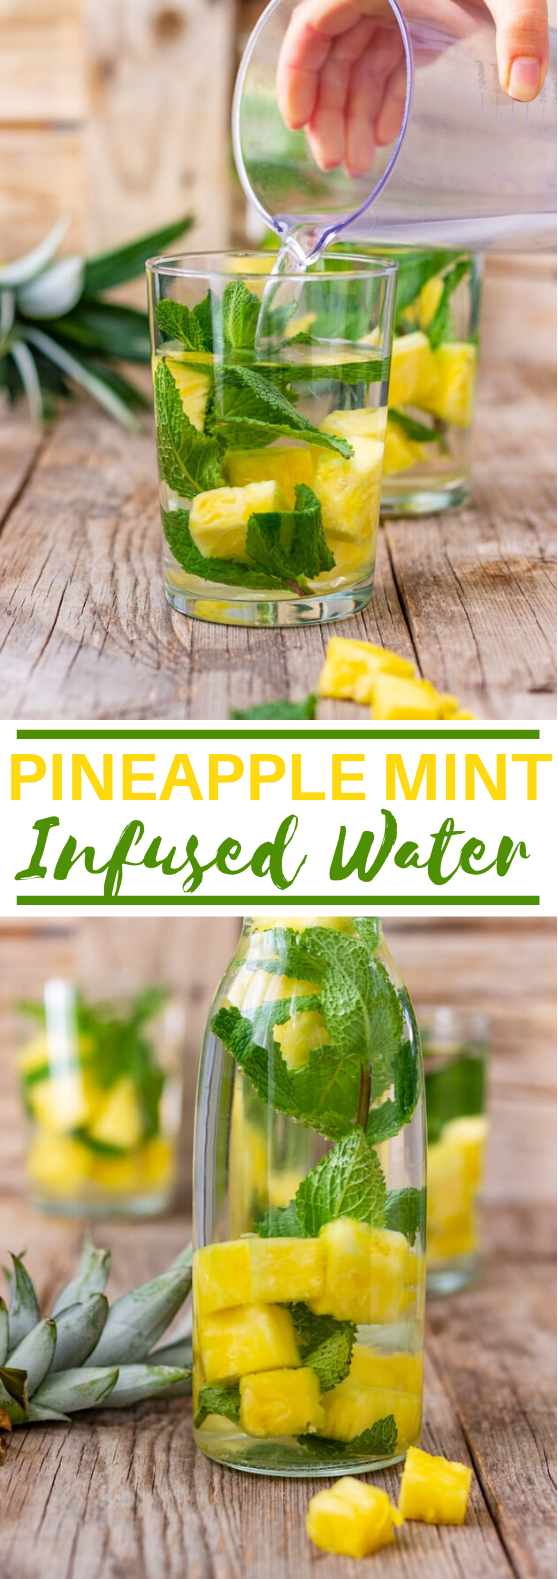 Pineapple Infused Water #healthy #drinks #smoothie #detox #infusedwater